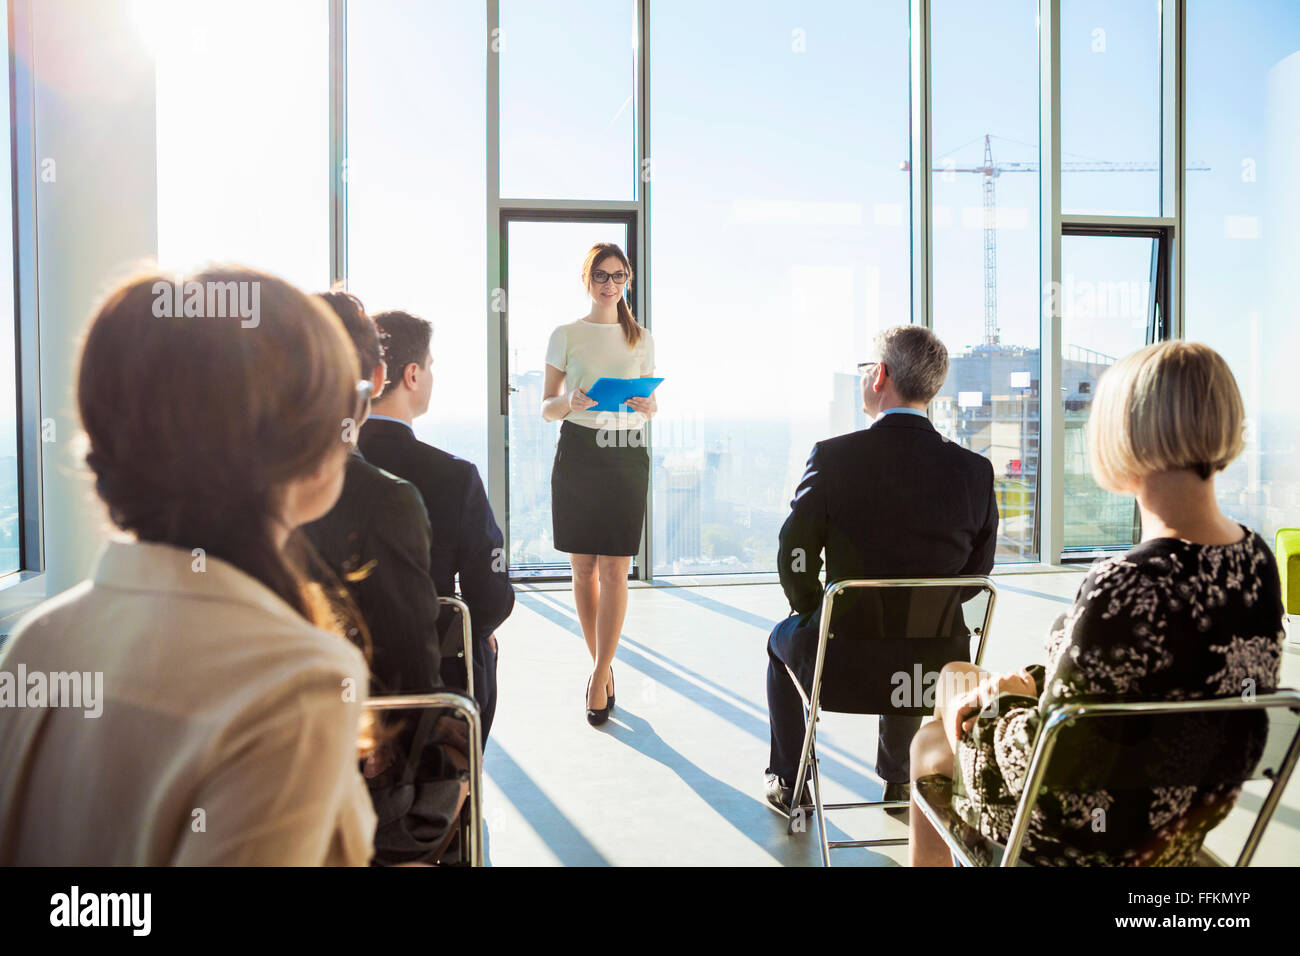 Businesswoman giving presentation in business meeting - Stock Image